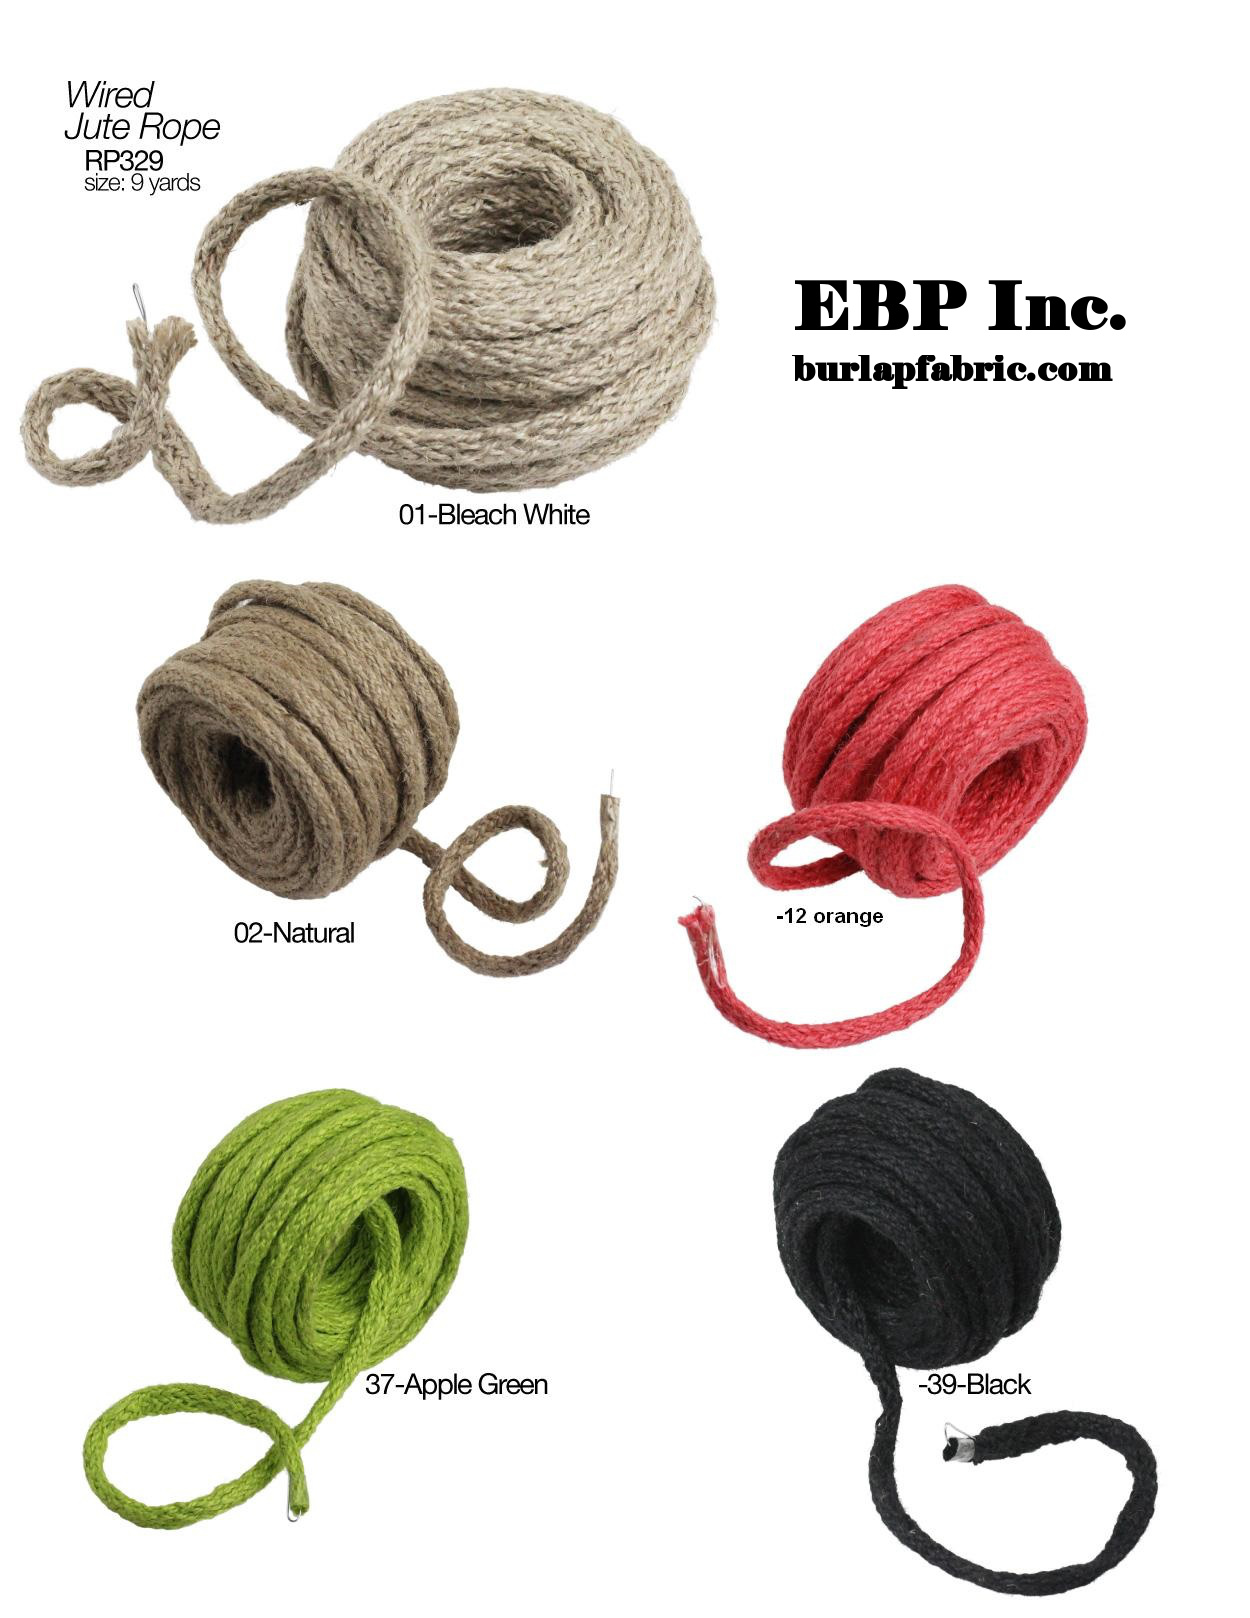 Wired Jute Twine